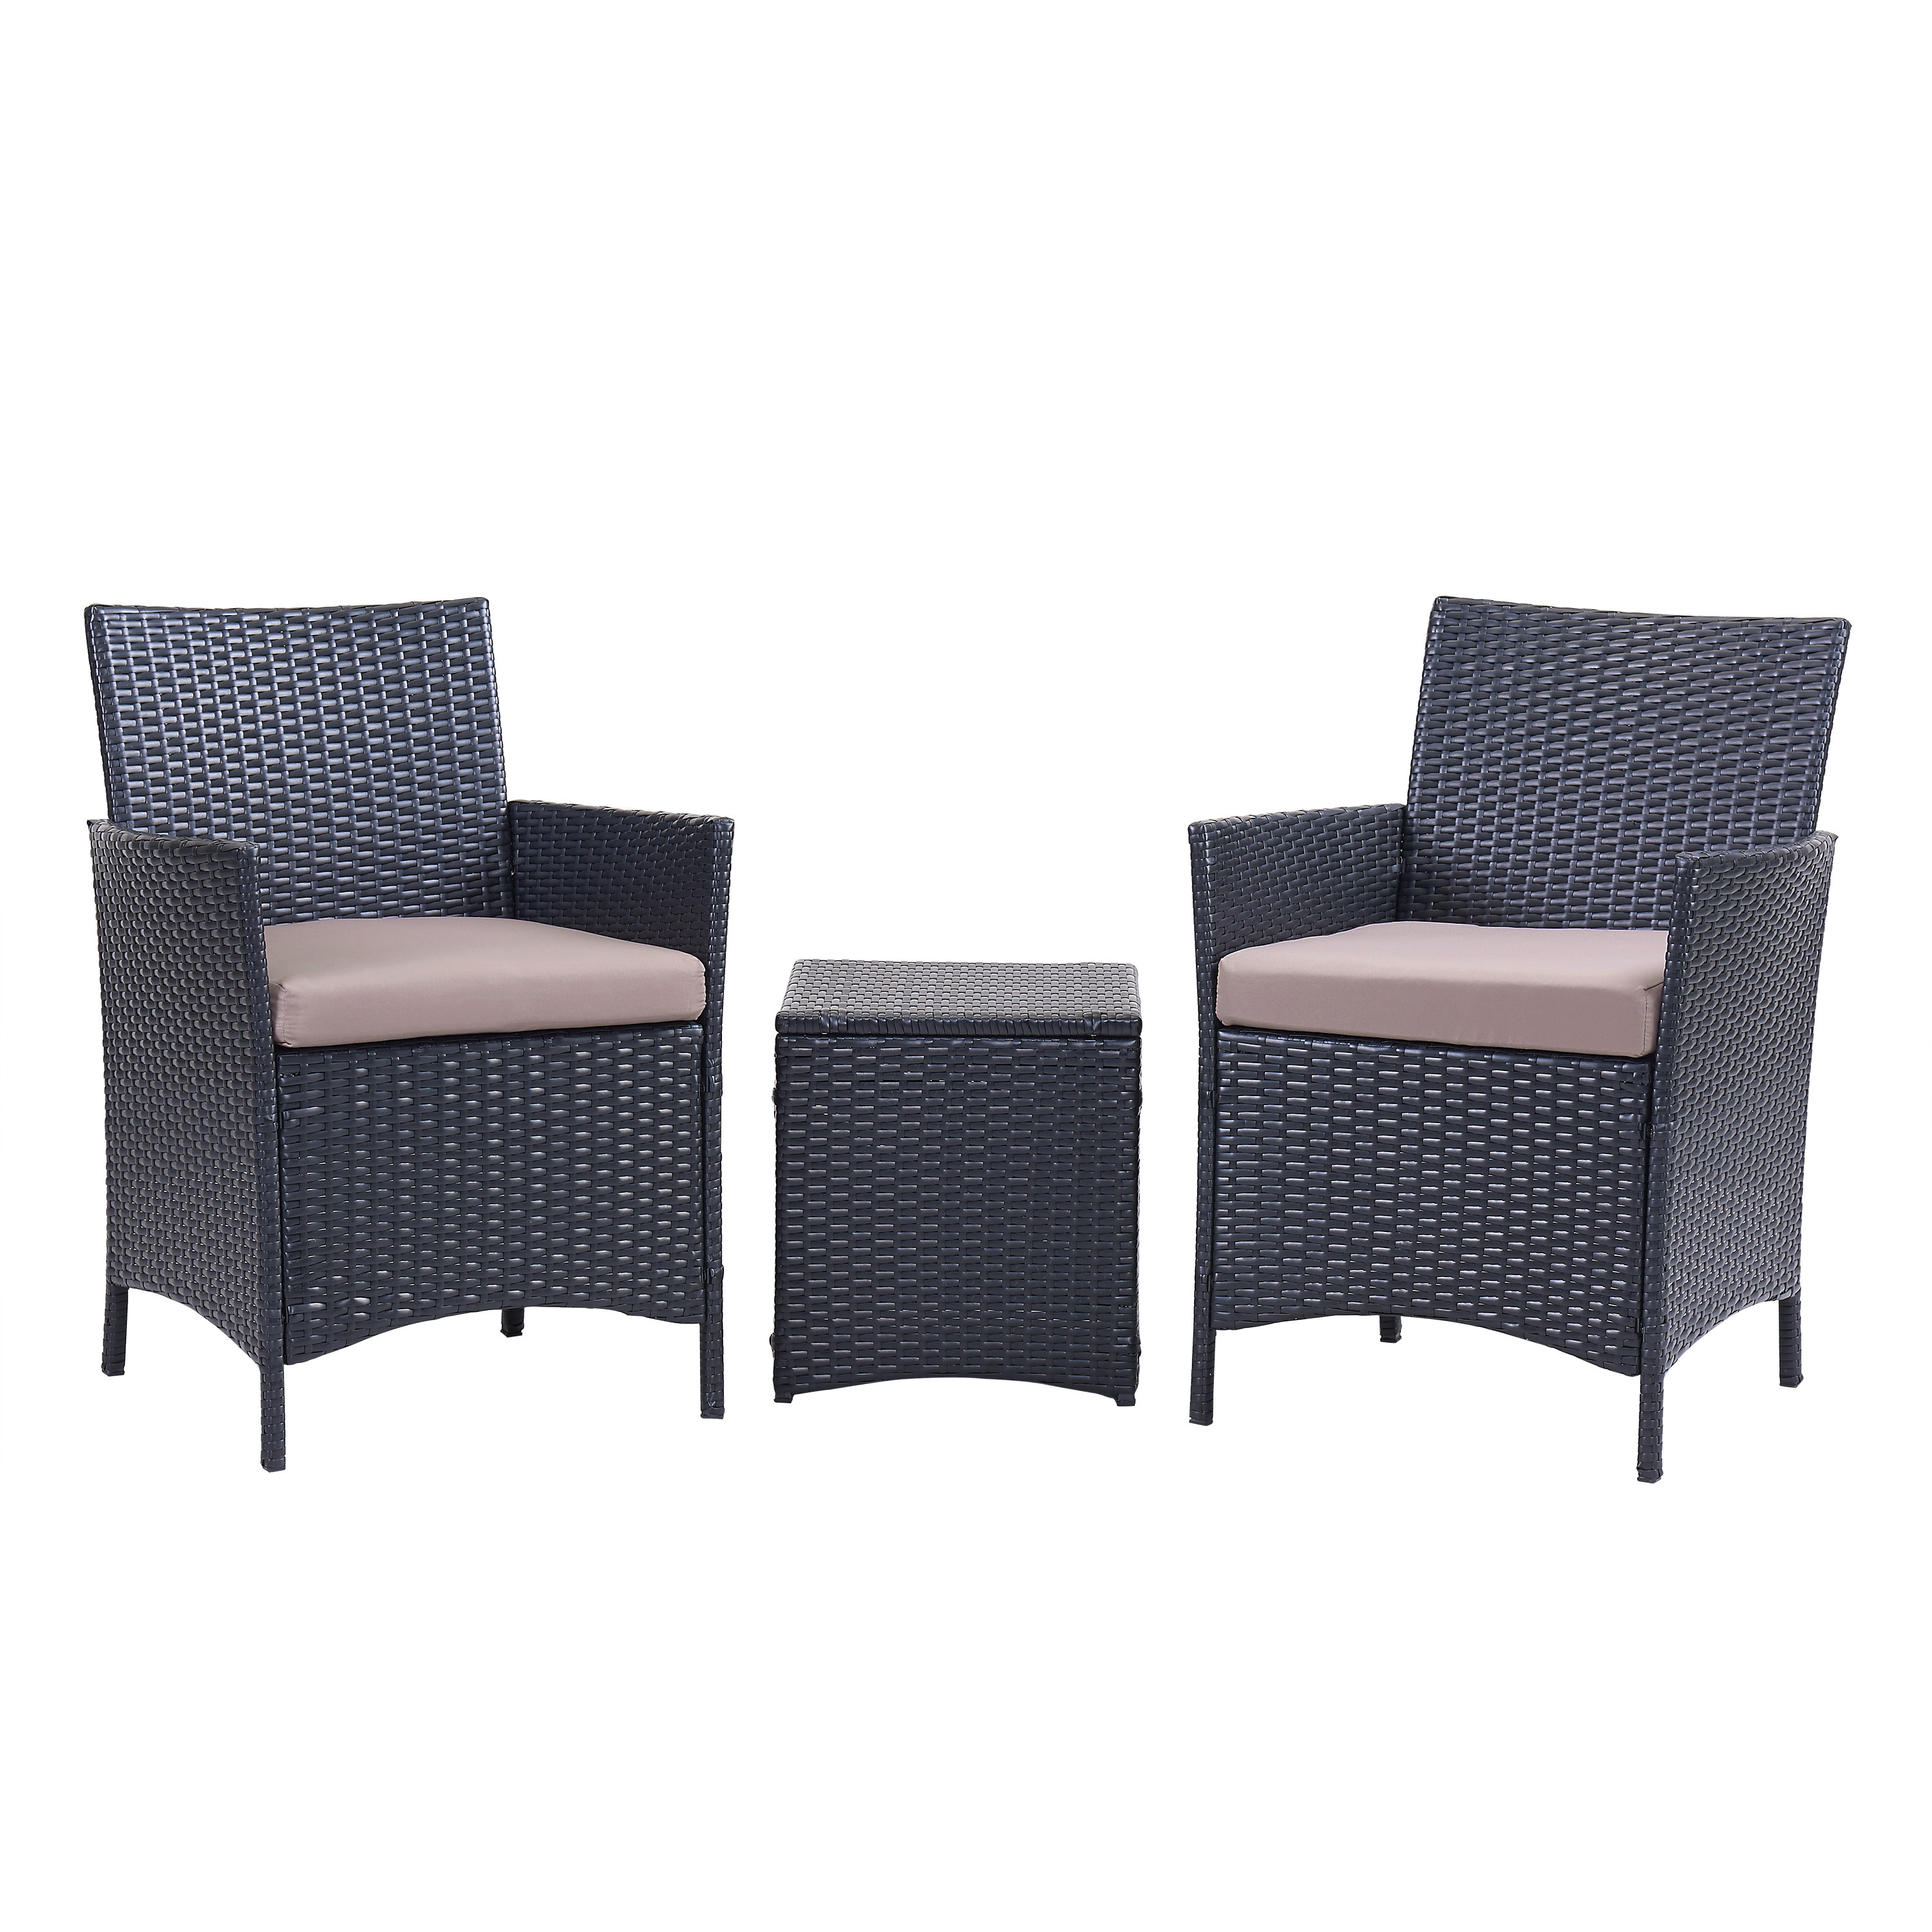 Santa Cruz 3-Piece Seating Set, Grey Wicker Rattan, White Cushions